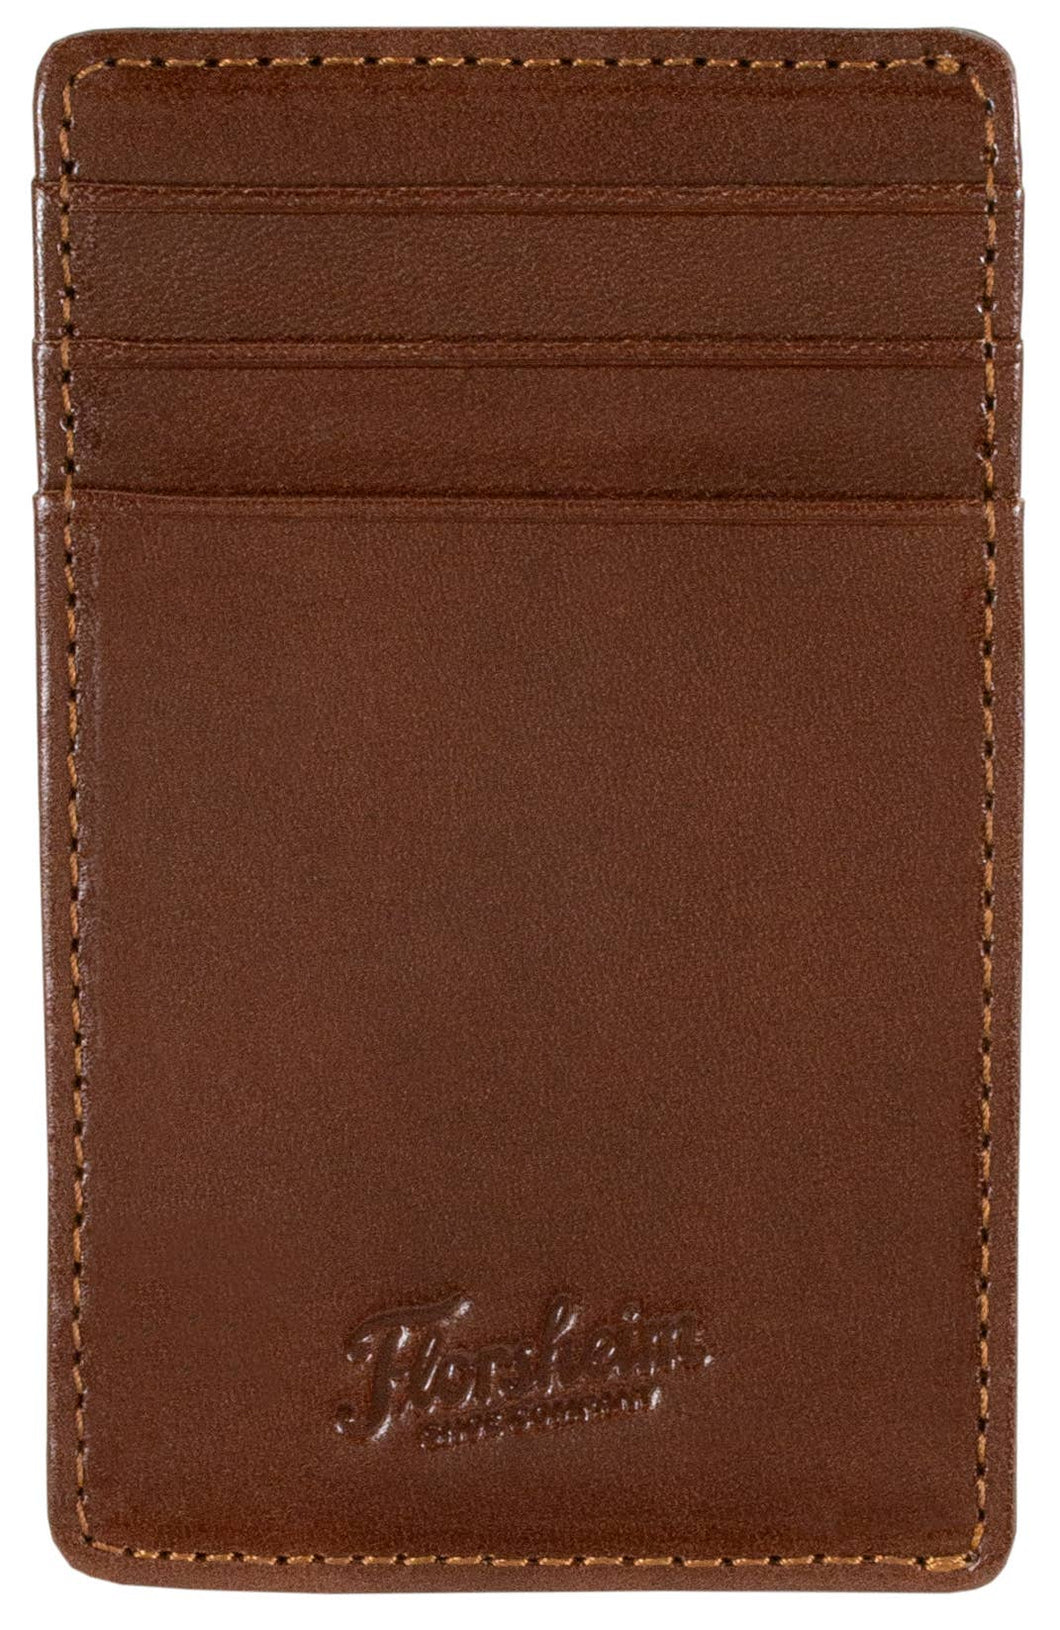 Cleveland Money Clip - Brown